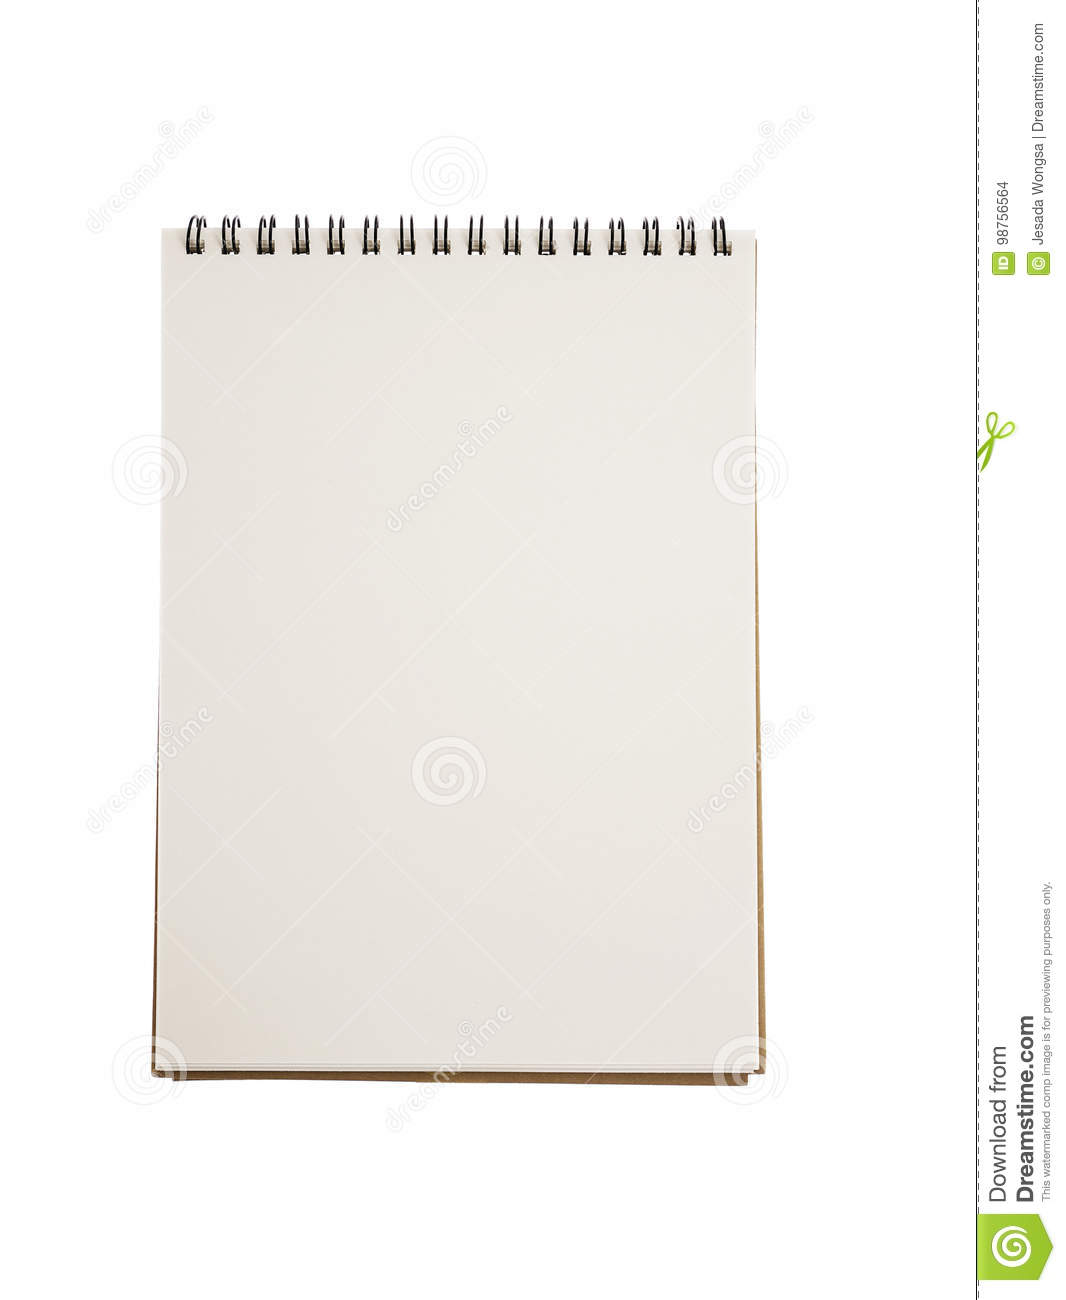 Realistic blank notebook template for cover design school business download realistic blank notebook template for cover design school business diary stock photo image of accmission Choice Image